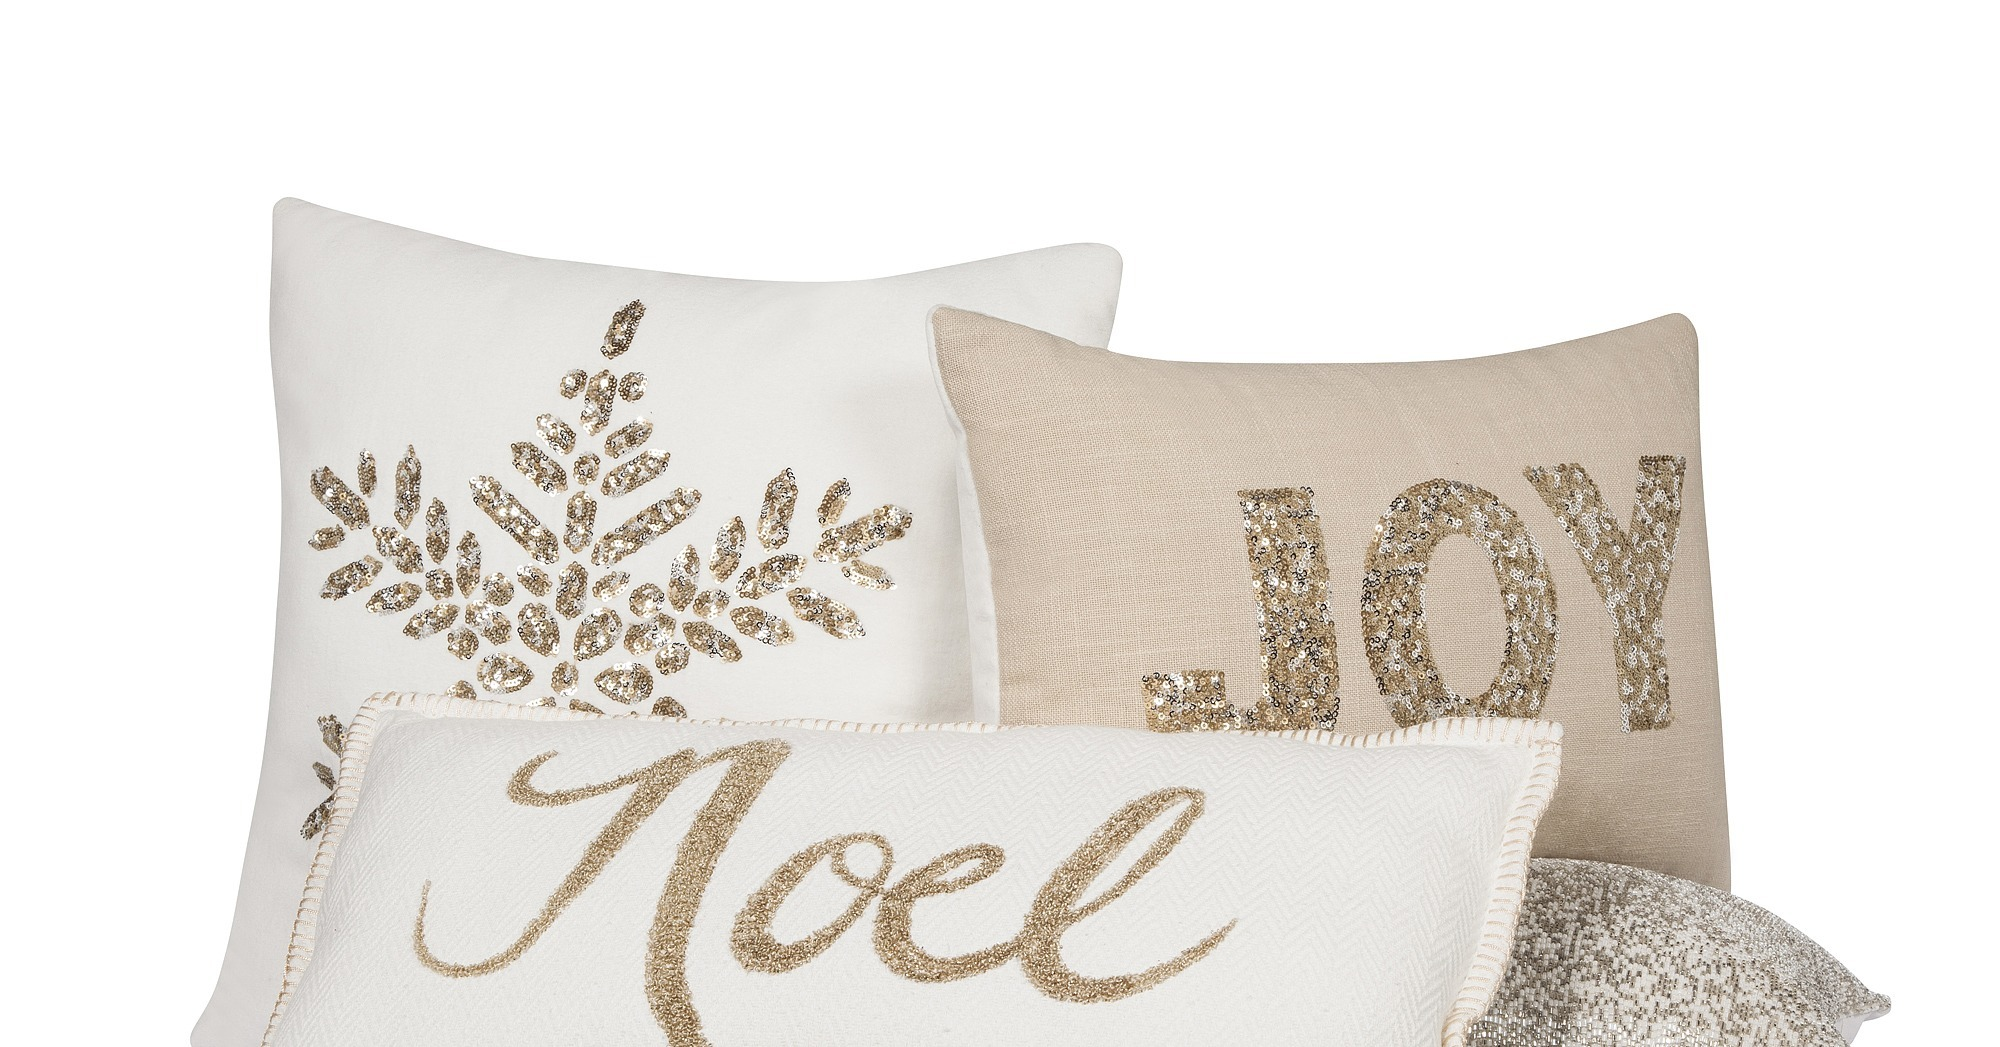 Target Decorative Christmas Pillows : Threshold Sequined Pillows ($20-$25), Threshold Embroidered Pillow Christmas Just Came Early ...